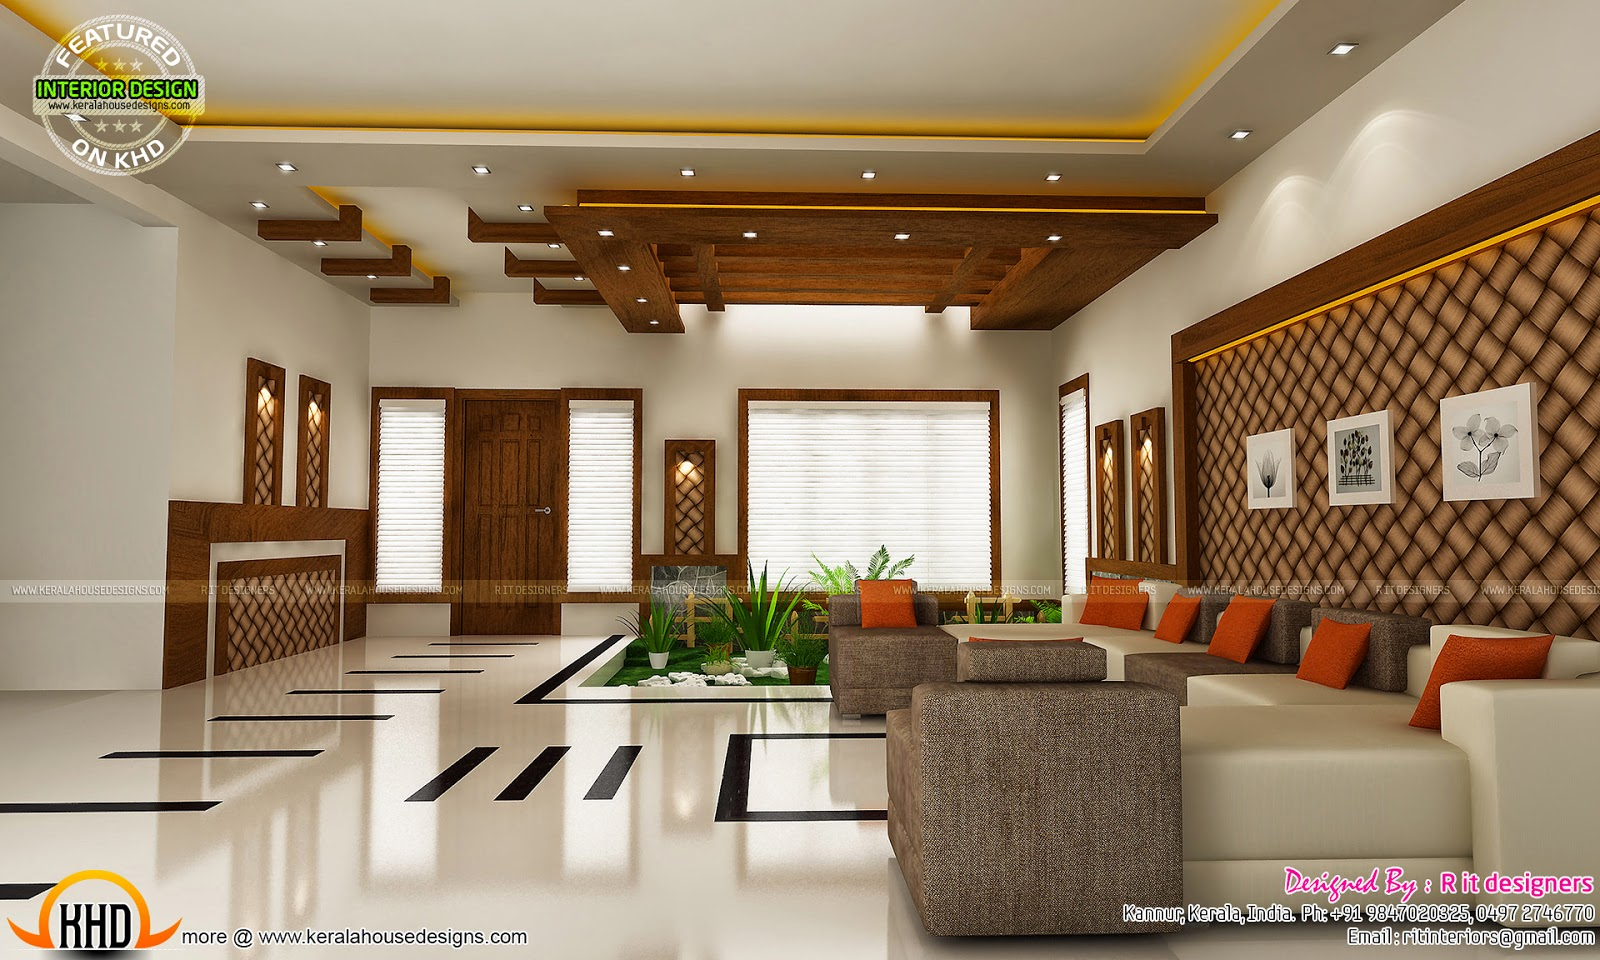 Modern and unique dining kitchen interior kerala home - Interior design styles living room ...